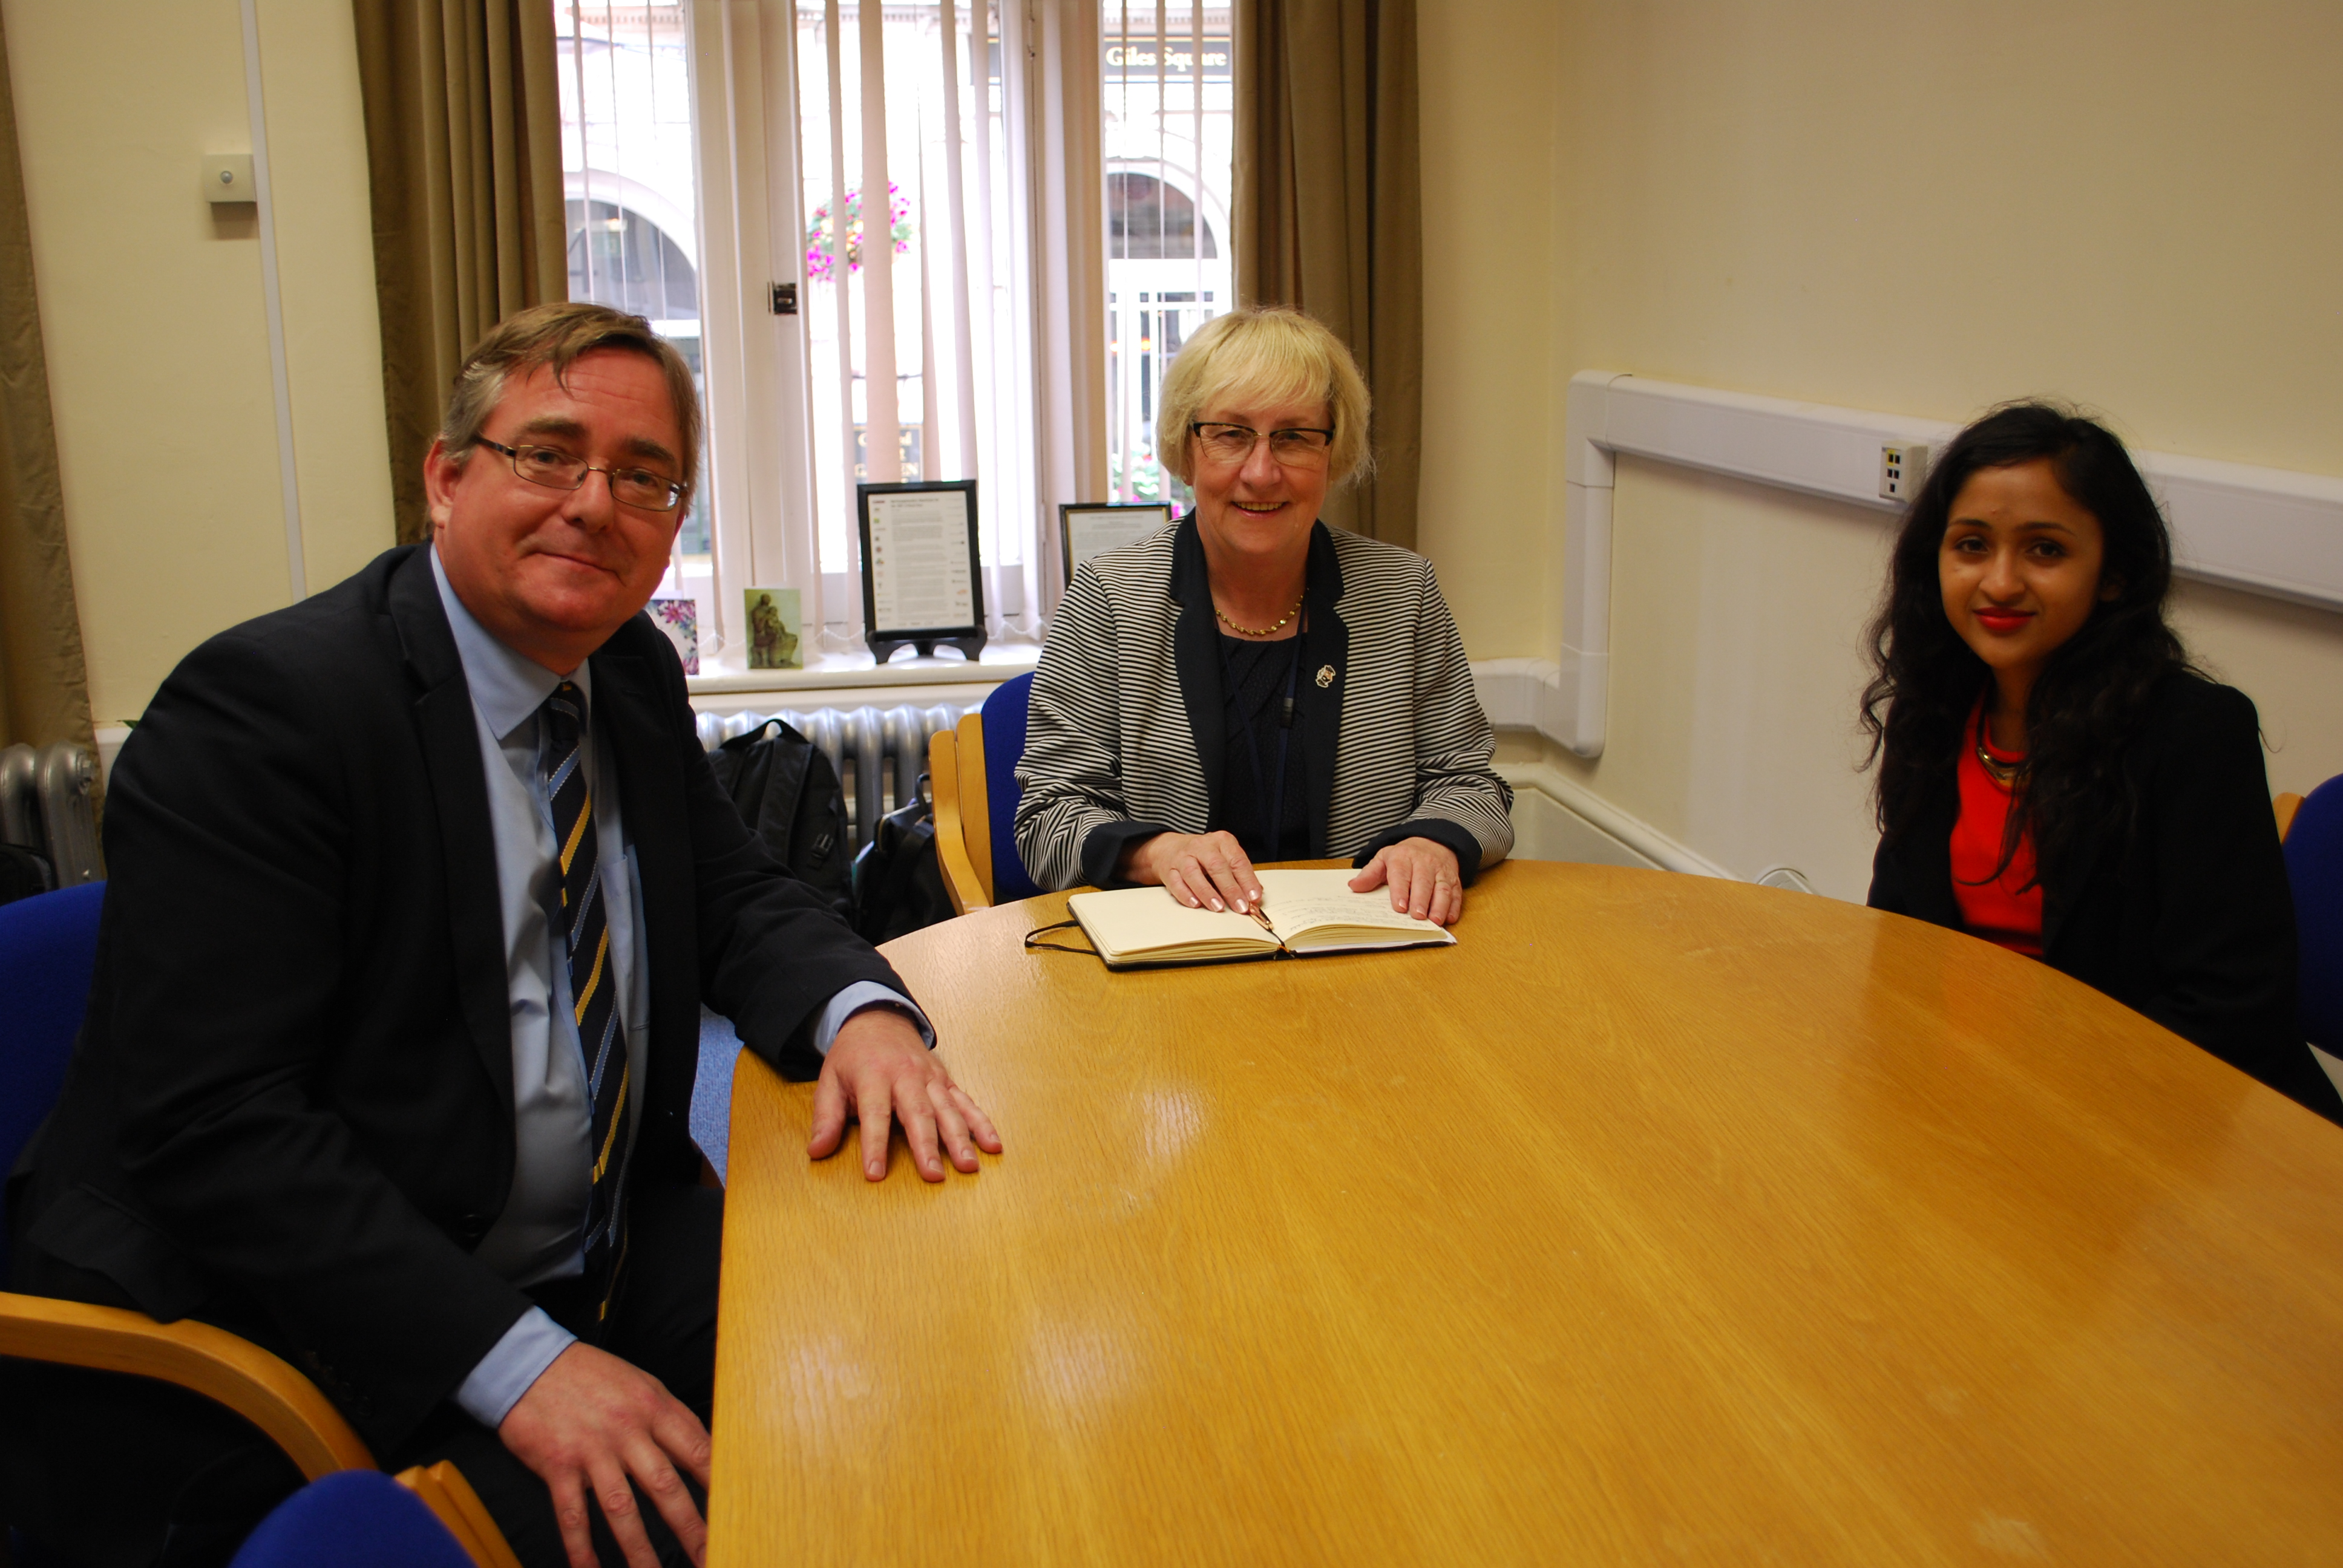 Cllr Mary Markham with DCLG officials